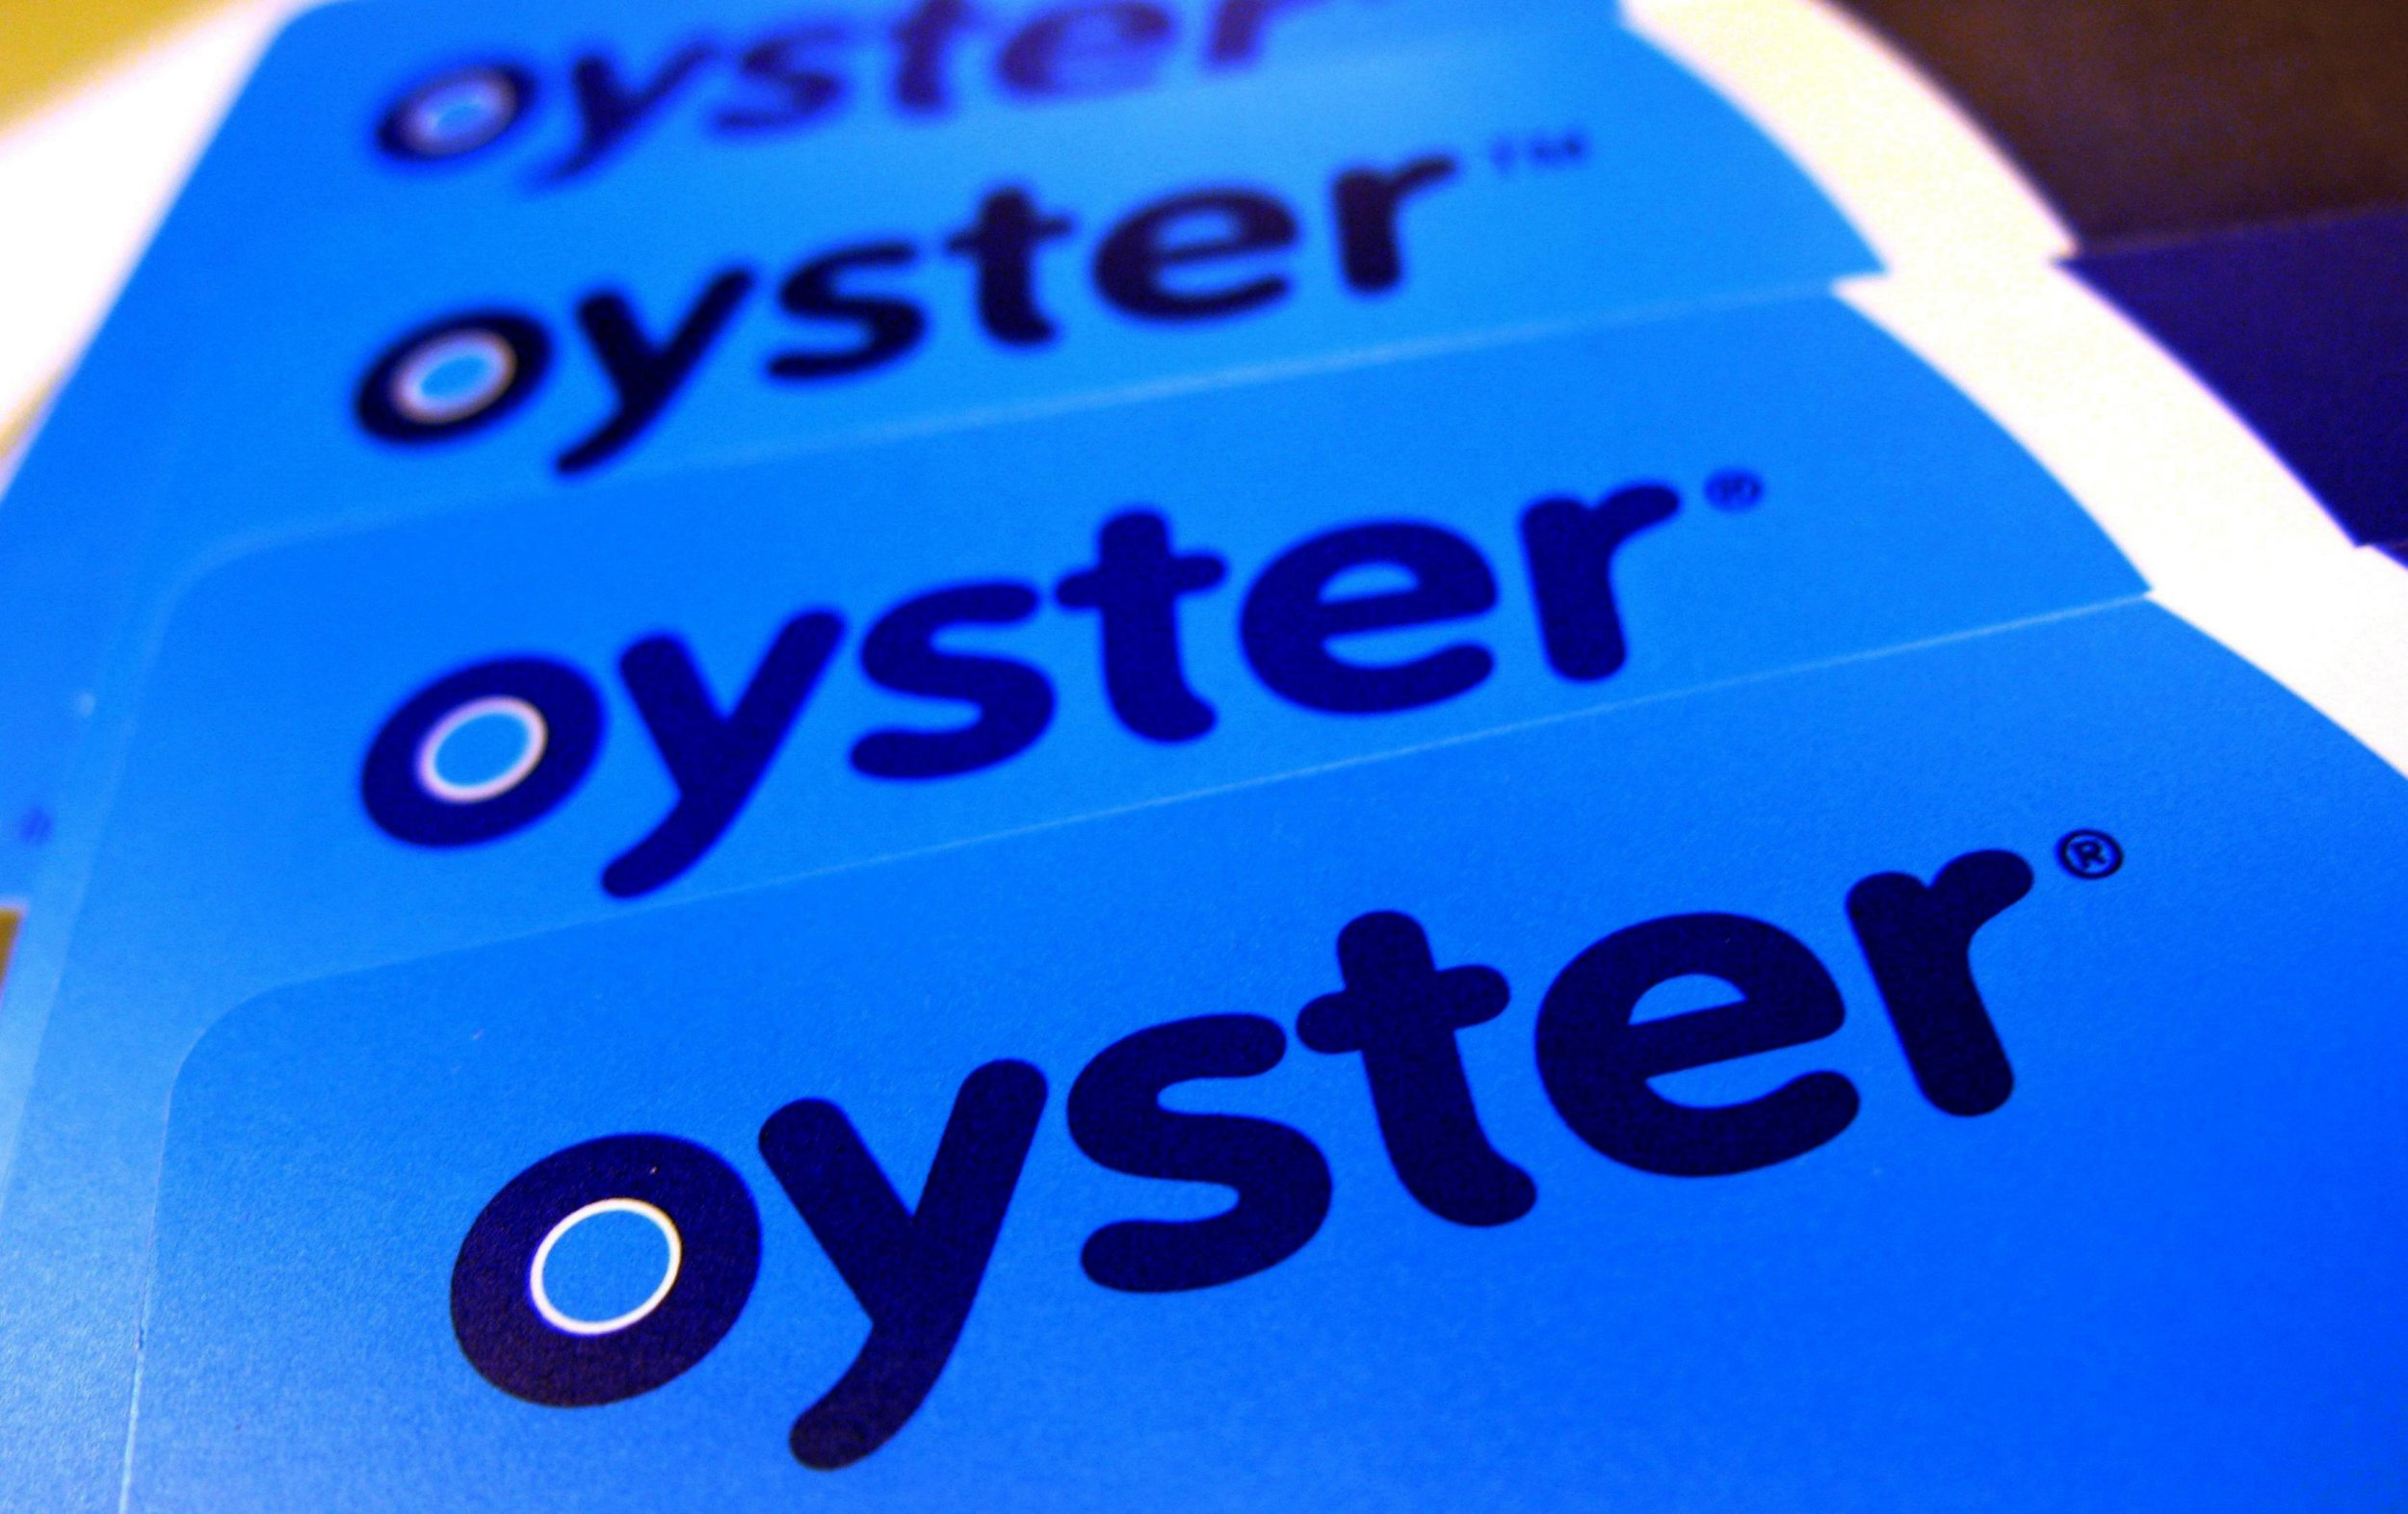 TfL 'incredible quiet' about £300,000,000 owed to Oyster card holders